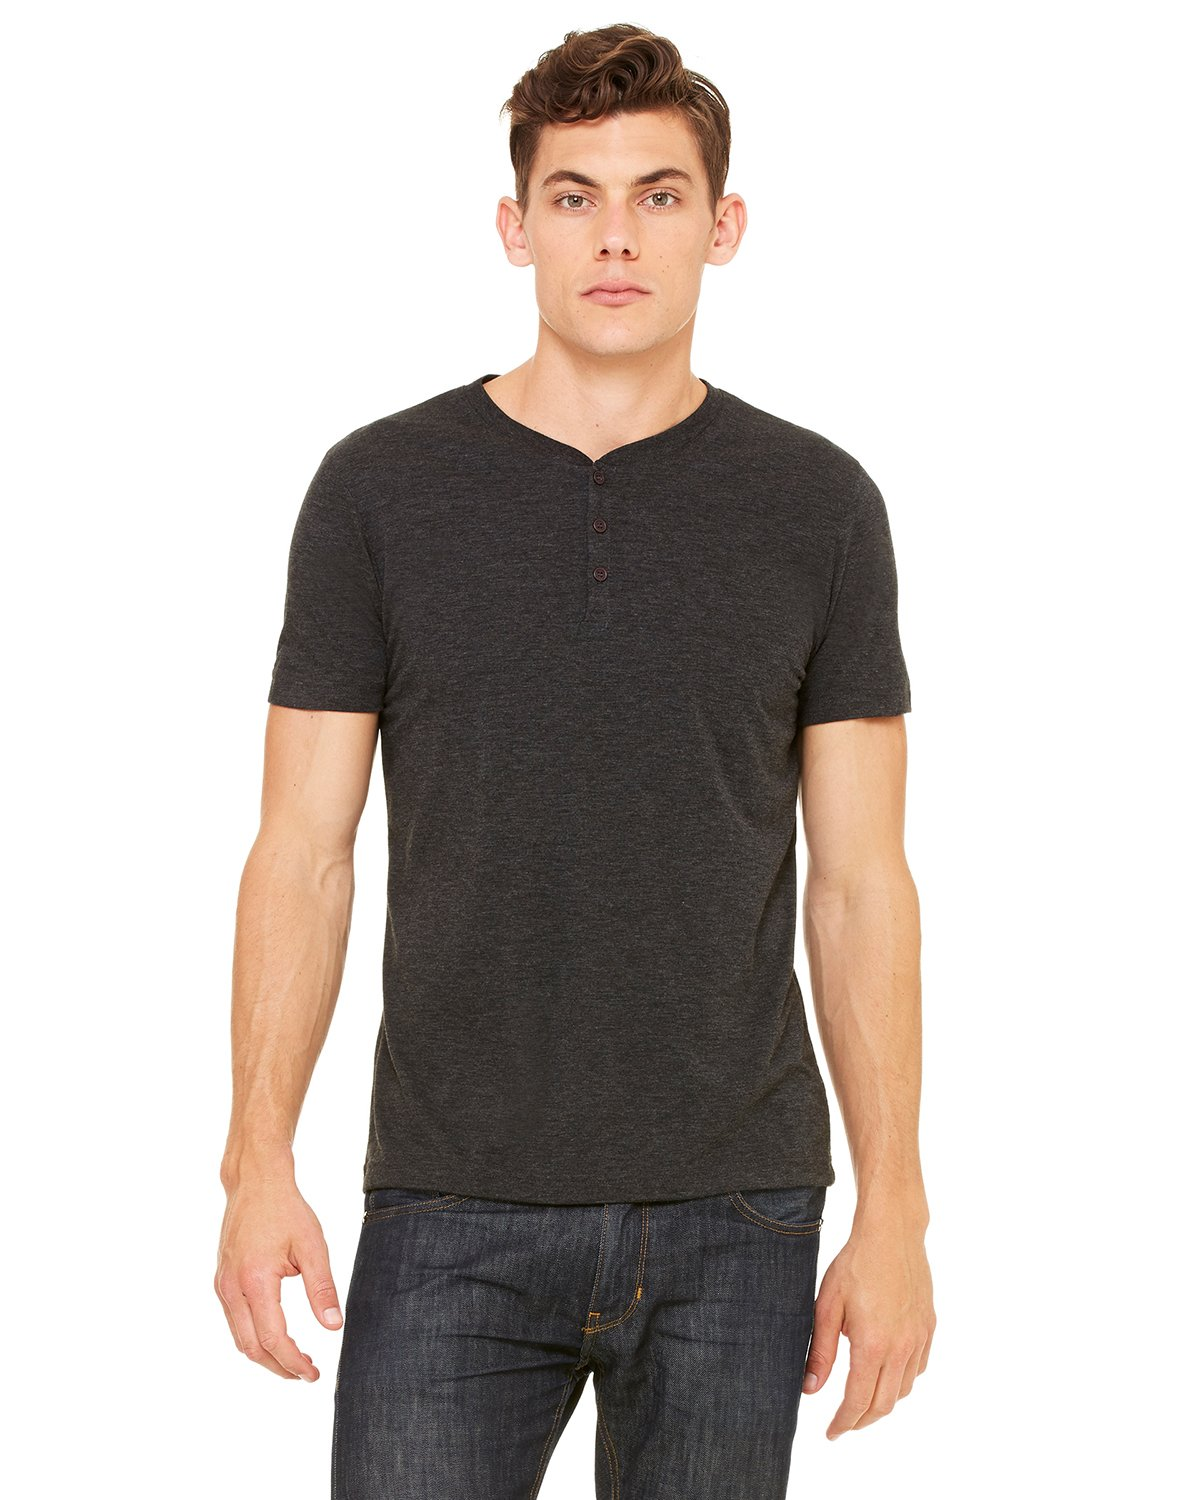 Bella + Canvas - 3125 - Men's Triblend Short-Sleeve Henley